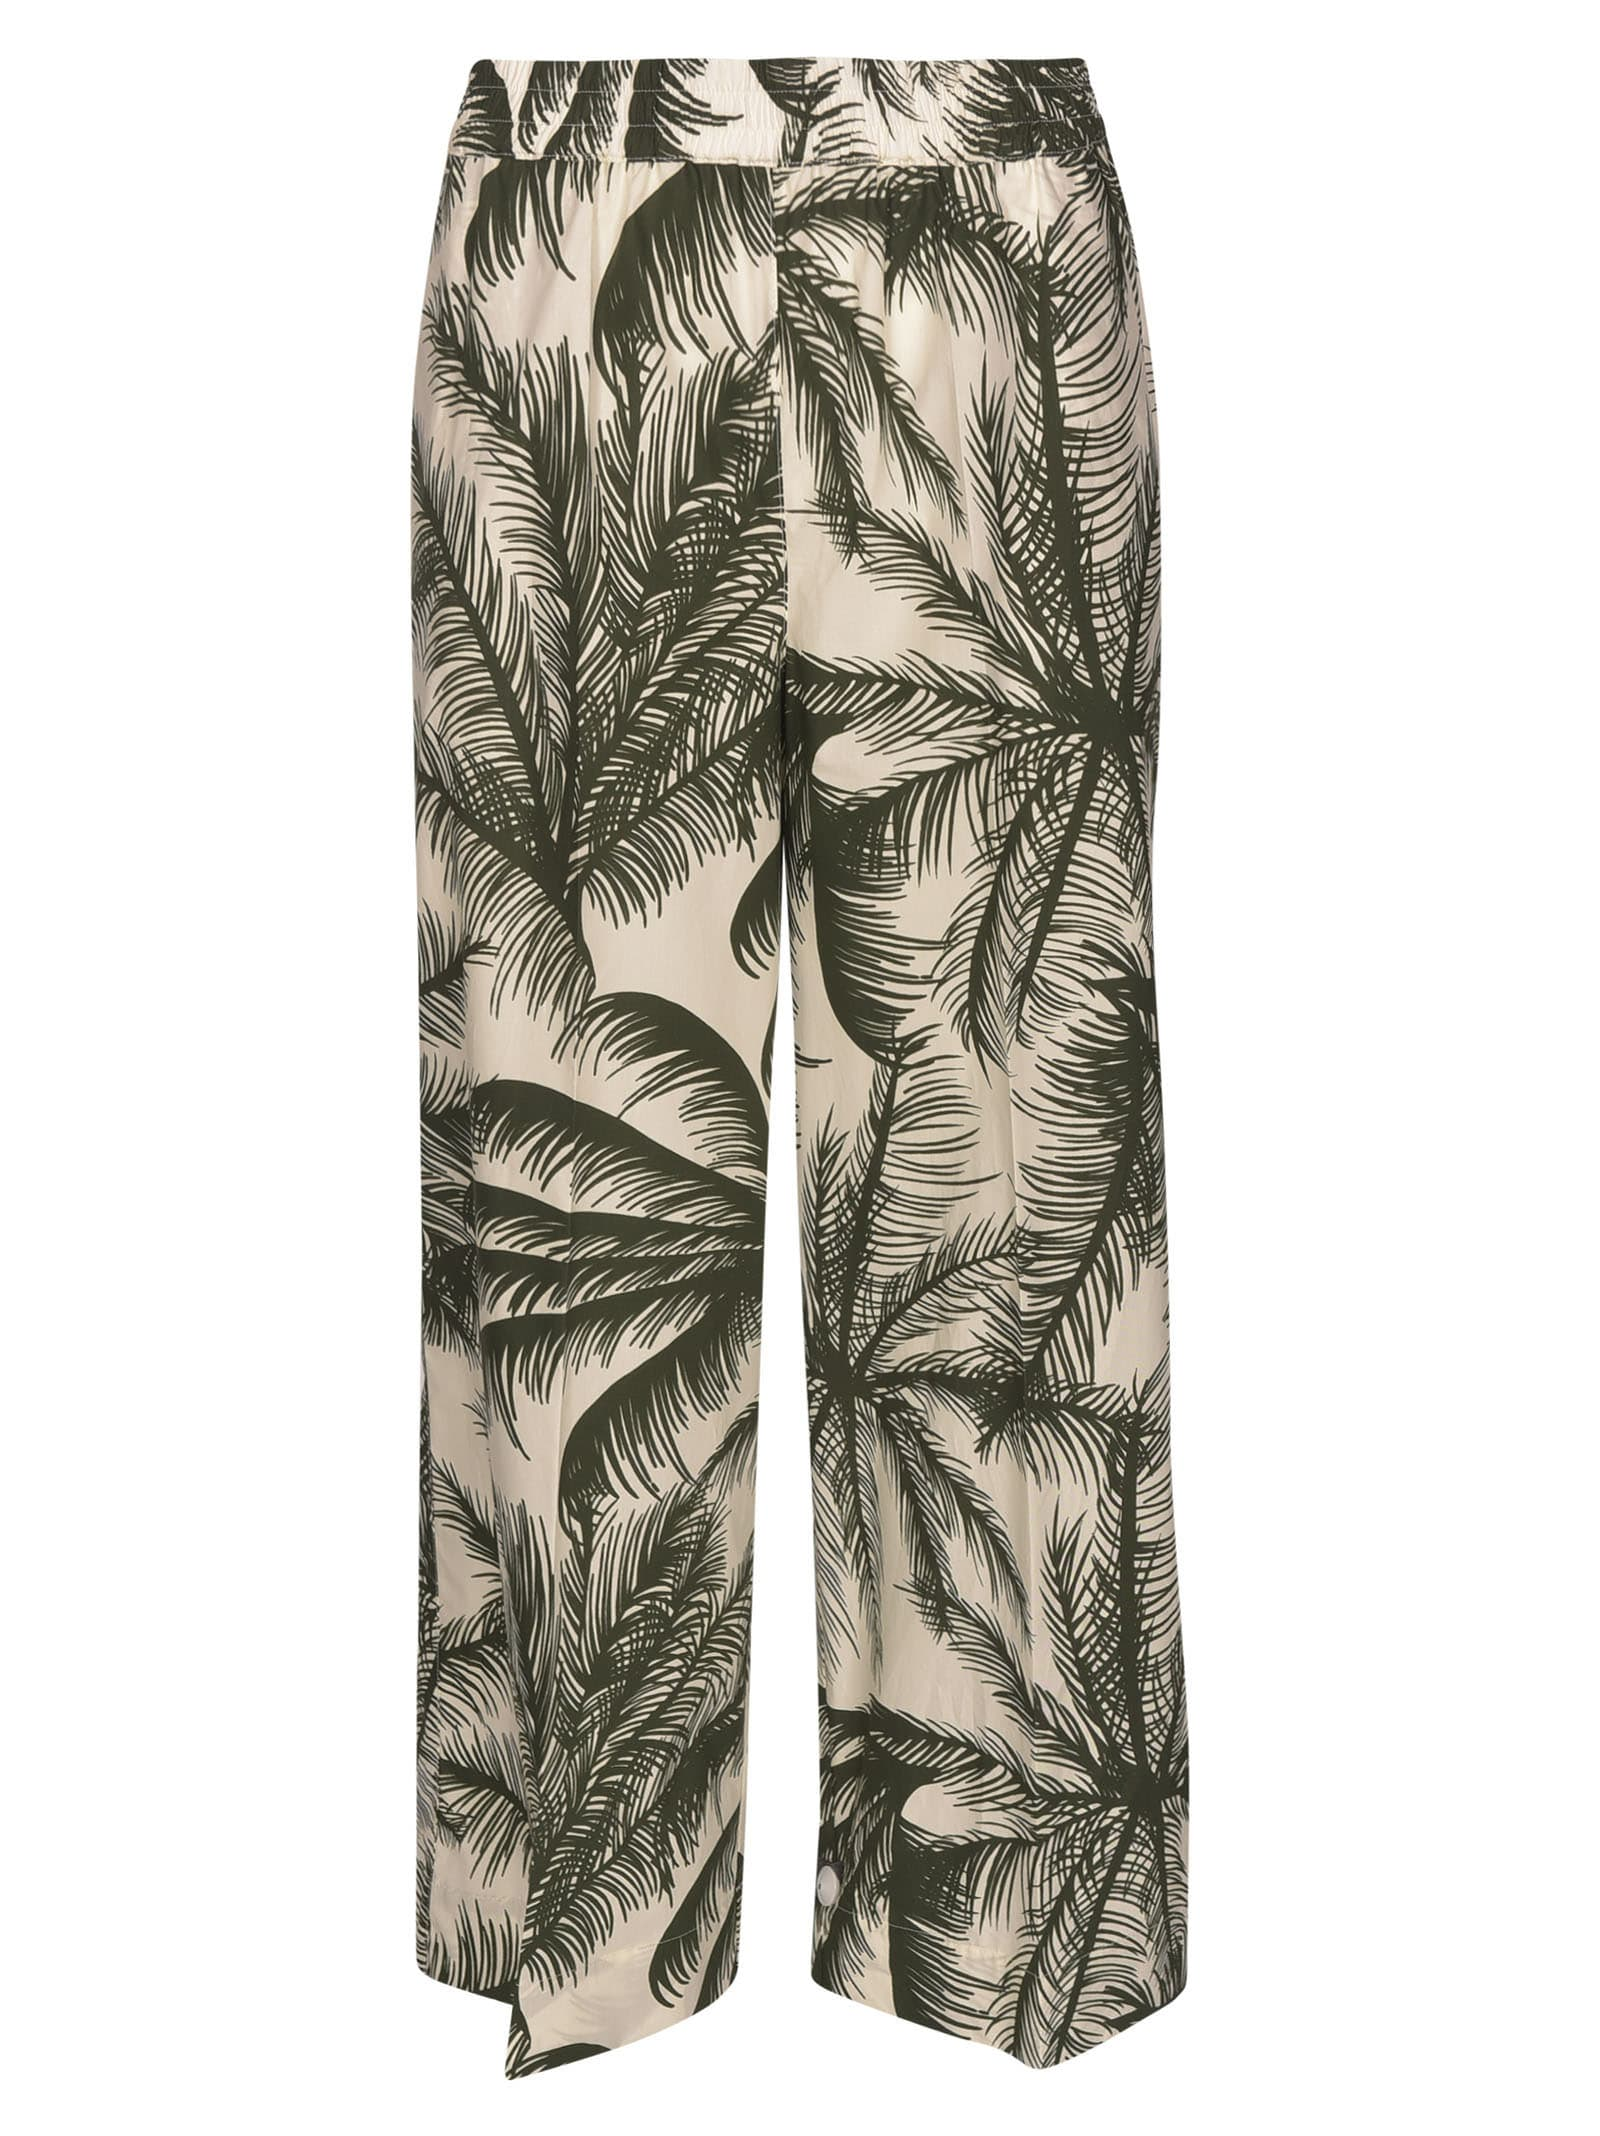 P.a.r.o.s.h. Cottons STRAIGHT LEG PALM PRINT CROPPED TROUSERS